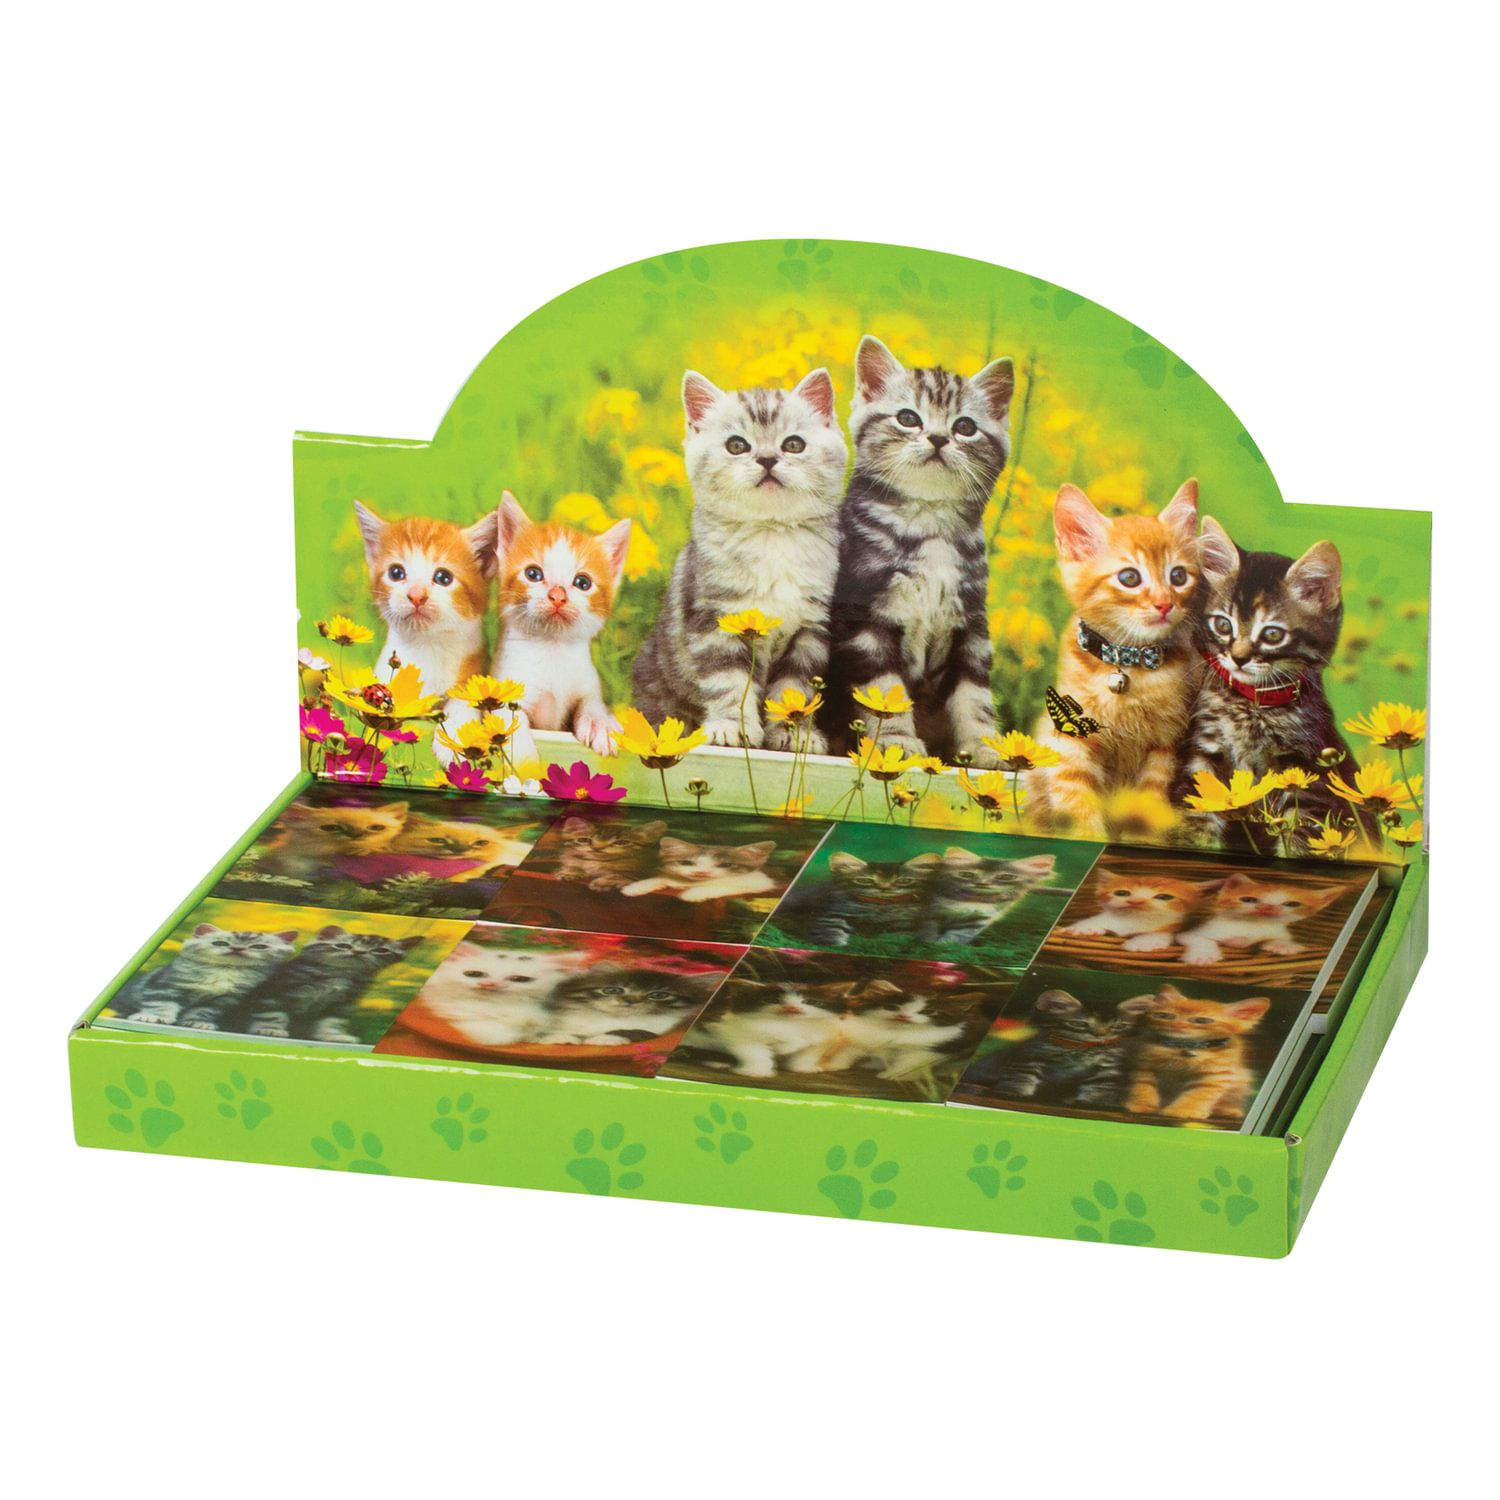 """BRAUBERG / Non-ruled notebook """"Kittens"""" SMALL FORMAT 40 sheets A7, 64x82 mm, gluing, plastic 3D cover, assorted"""